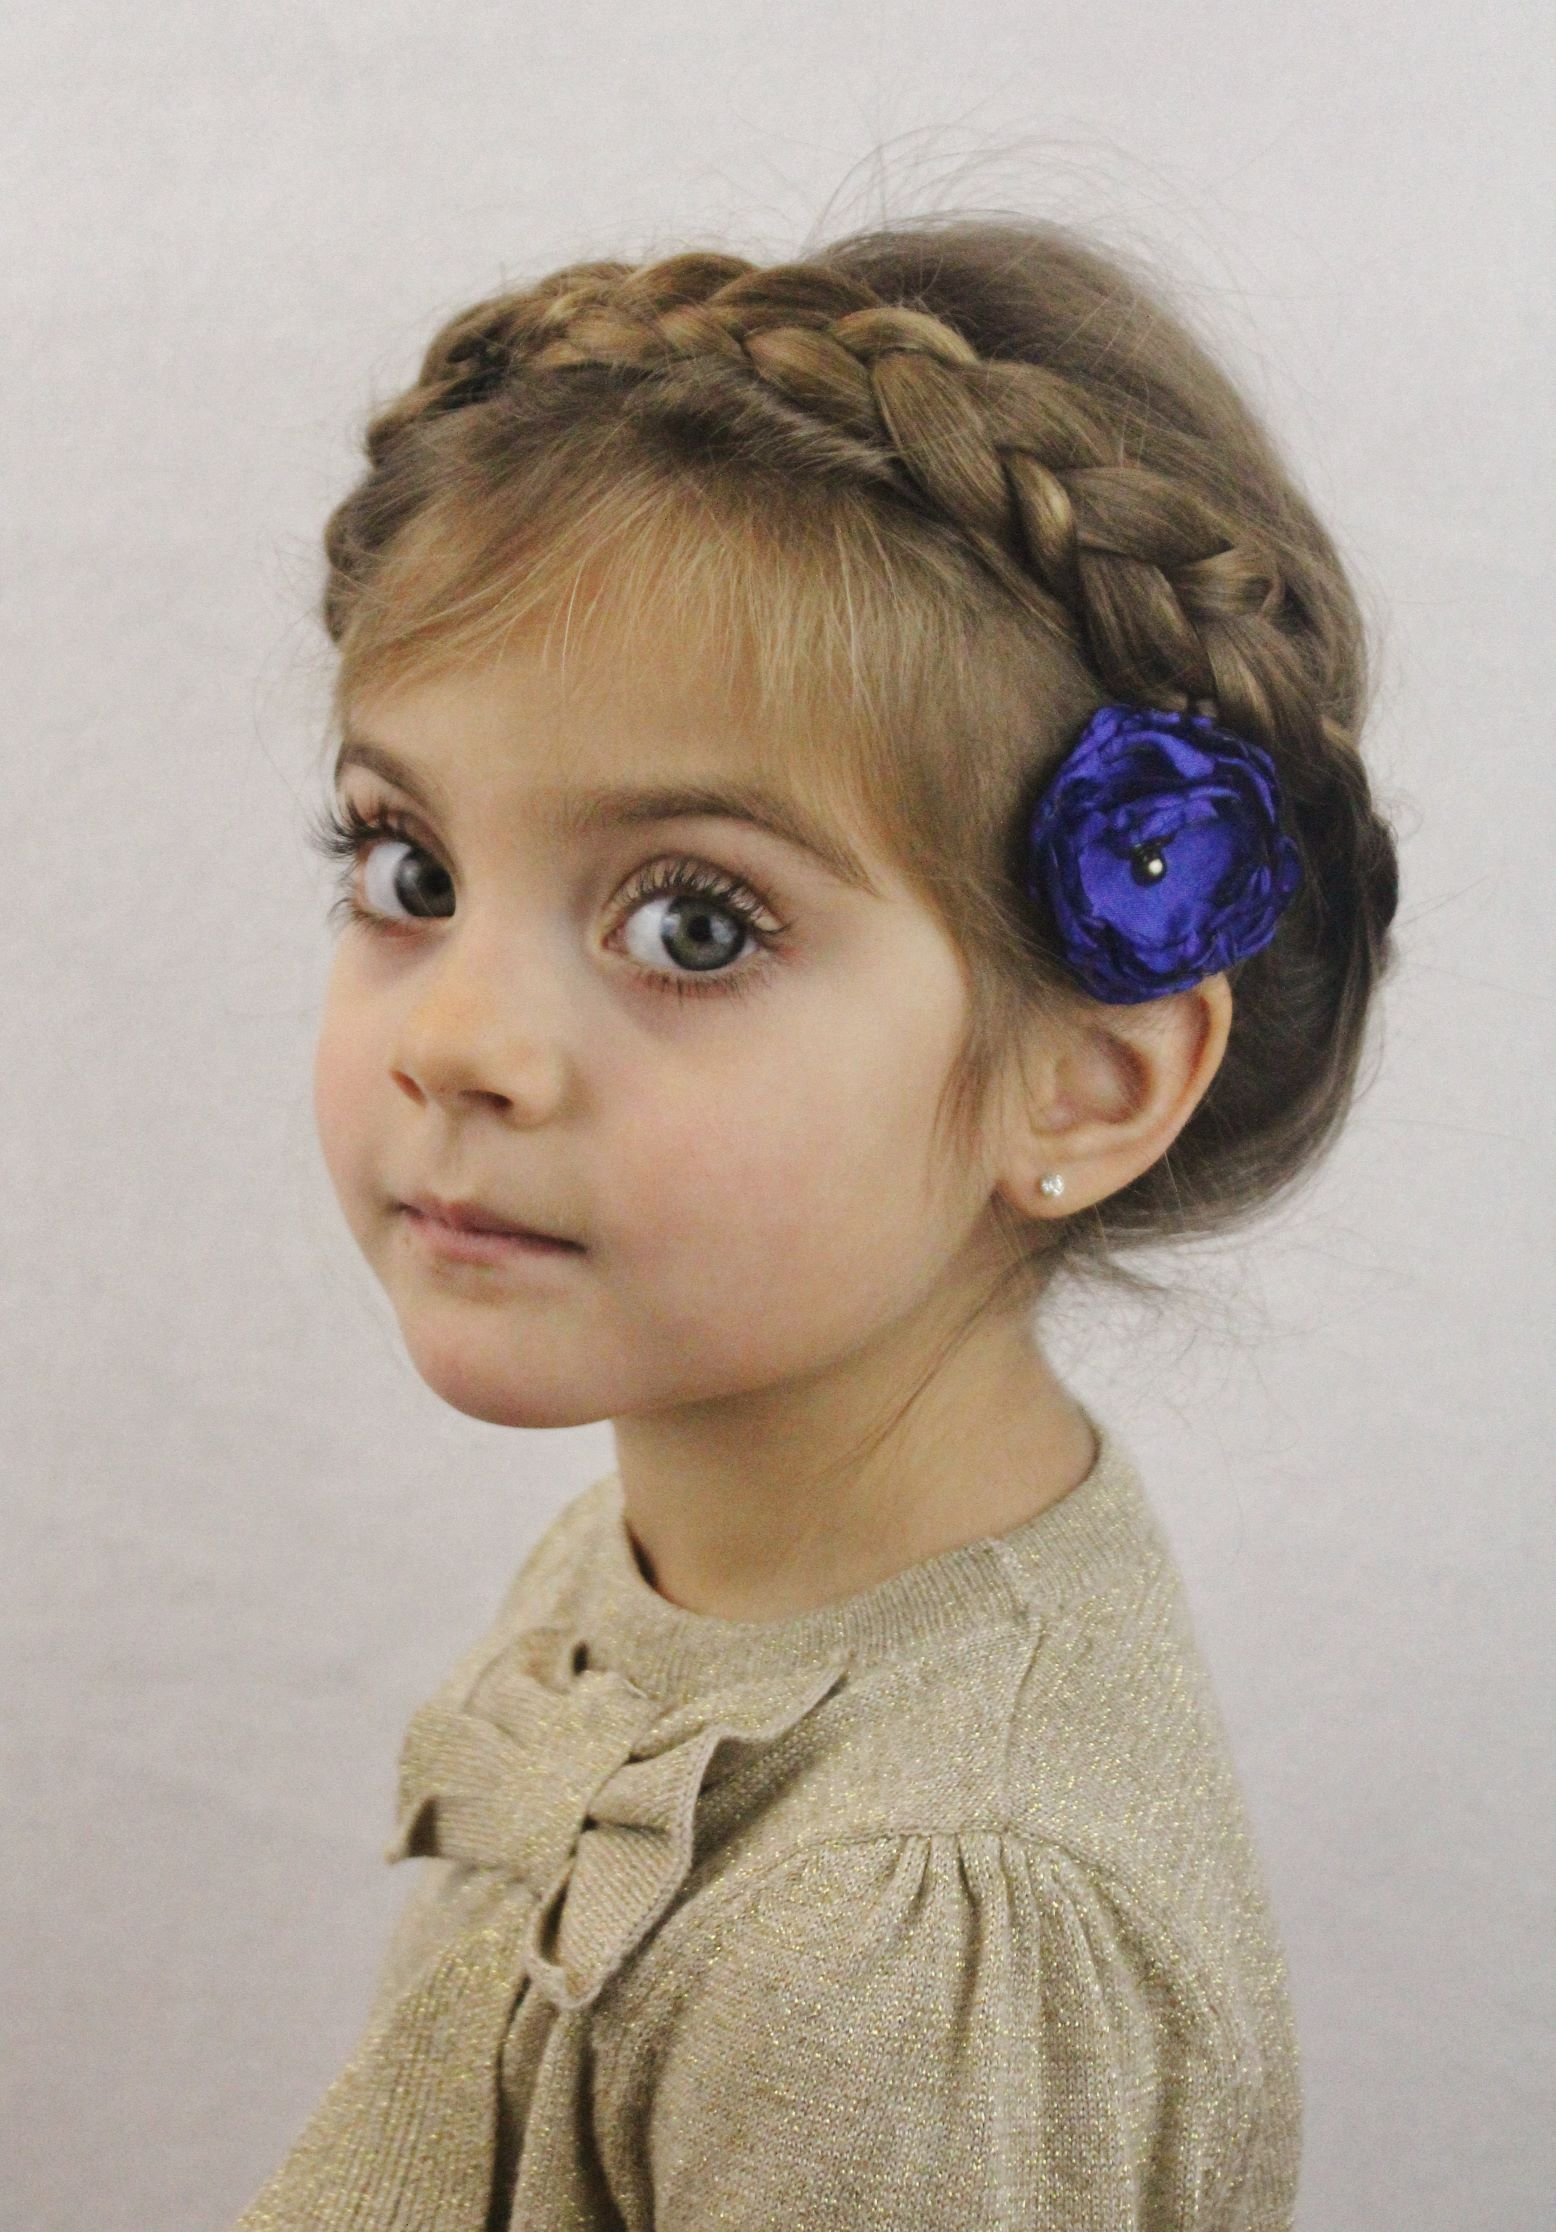 New Top 10 Hairstyles For 11 Year Old Girls 2017 Hair Style Ideas With Pictures